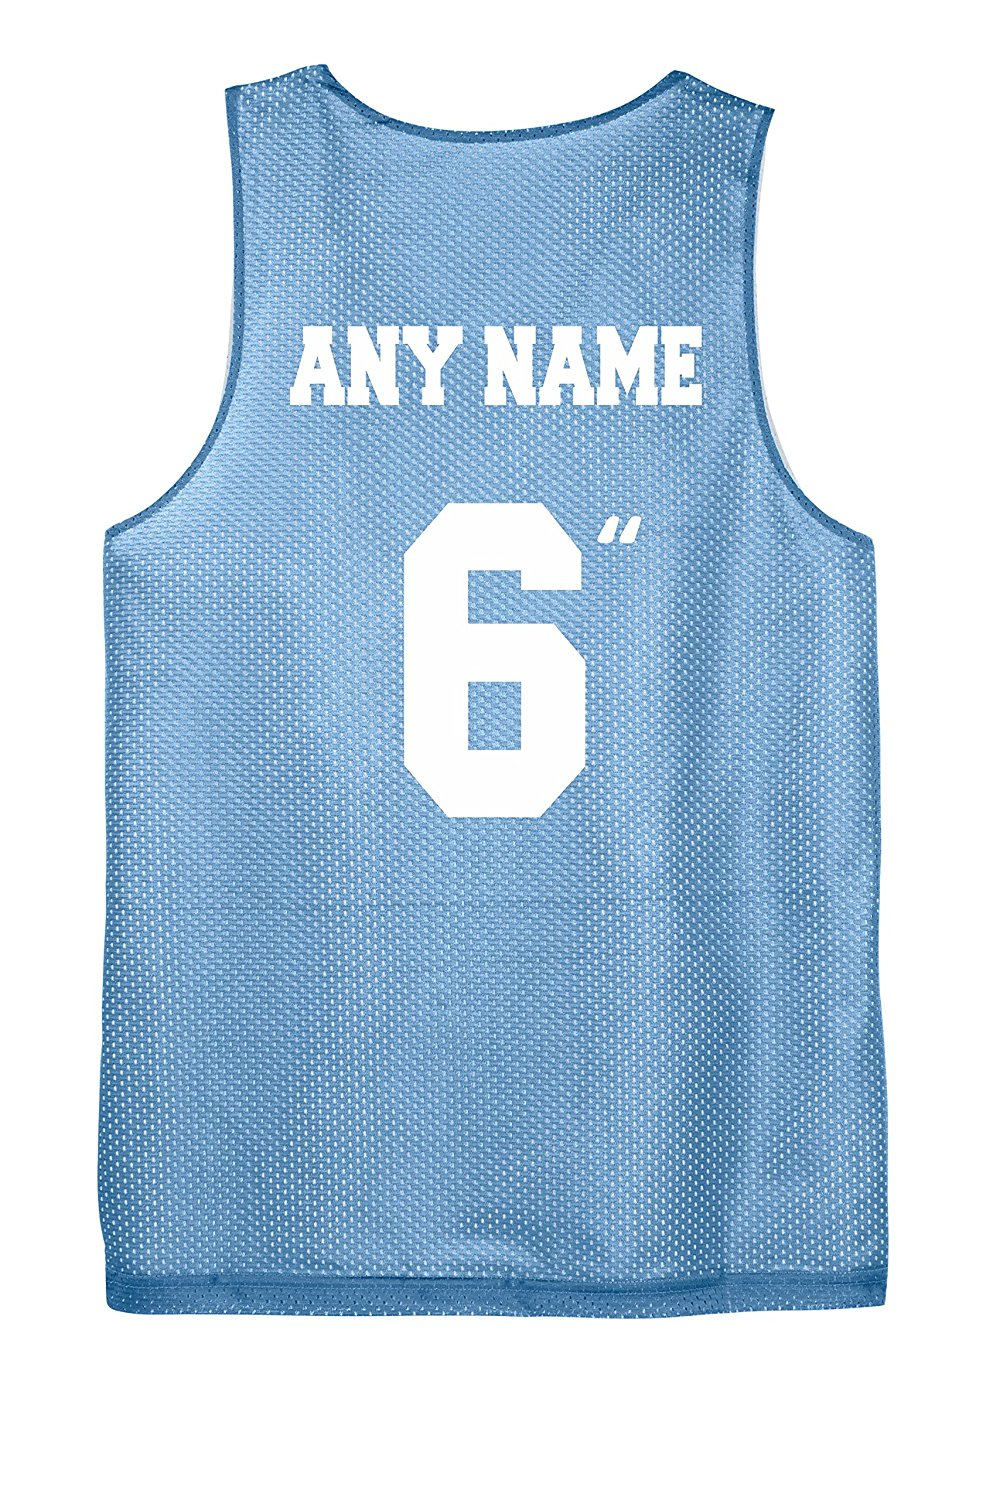 ef20cf38a Get Quotations · Youth Basketball Reversible Jersey Custom Screen Printed  on All 4 Sides